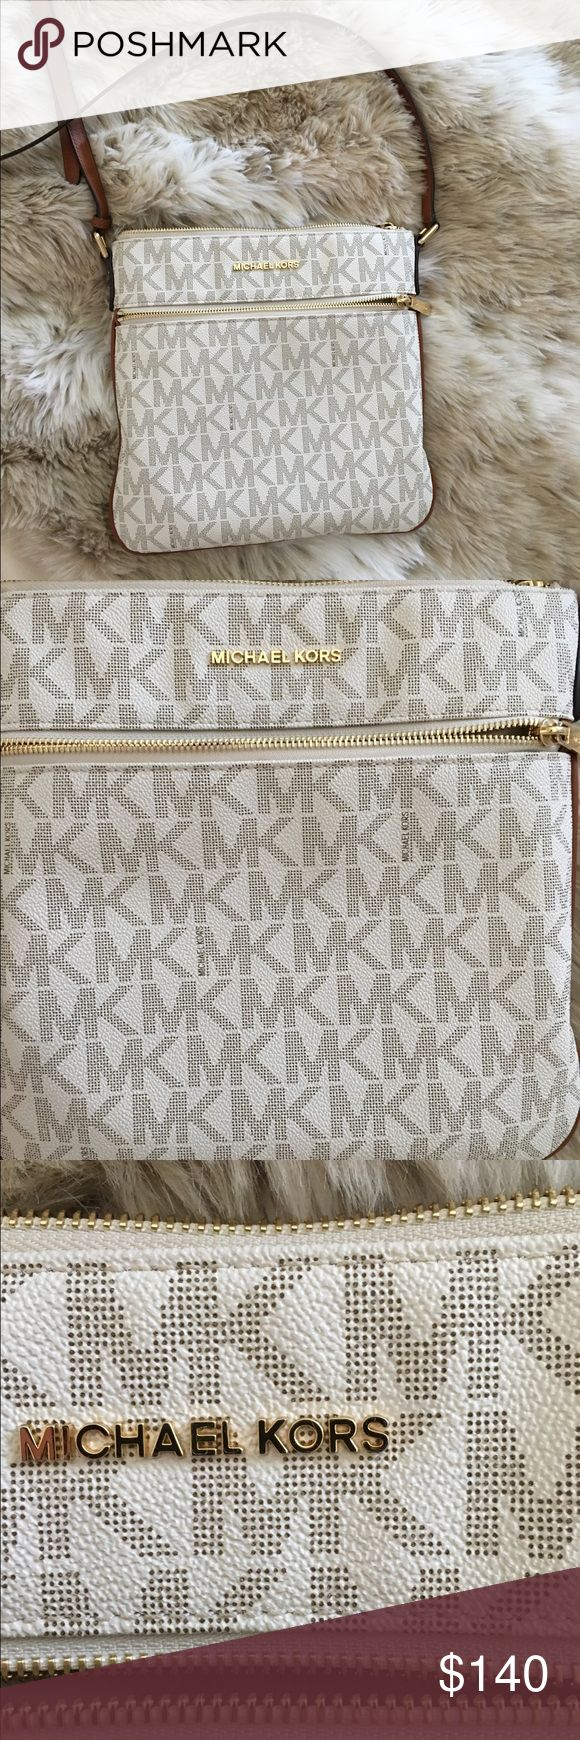 Michael Kors Cross Body Bag Authentic Michael Kors Bedford Logo bag, in perfect condition. Only used a few times. Sometimes a girl really needs the perfect bag to complement her spunky personality. That is just what the Michael Kors bag does! Perfect for an evening in or a day out. No matter where you take this bag it is sure to impress everyone around you. Michael Kors Bags Crossbody Bags